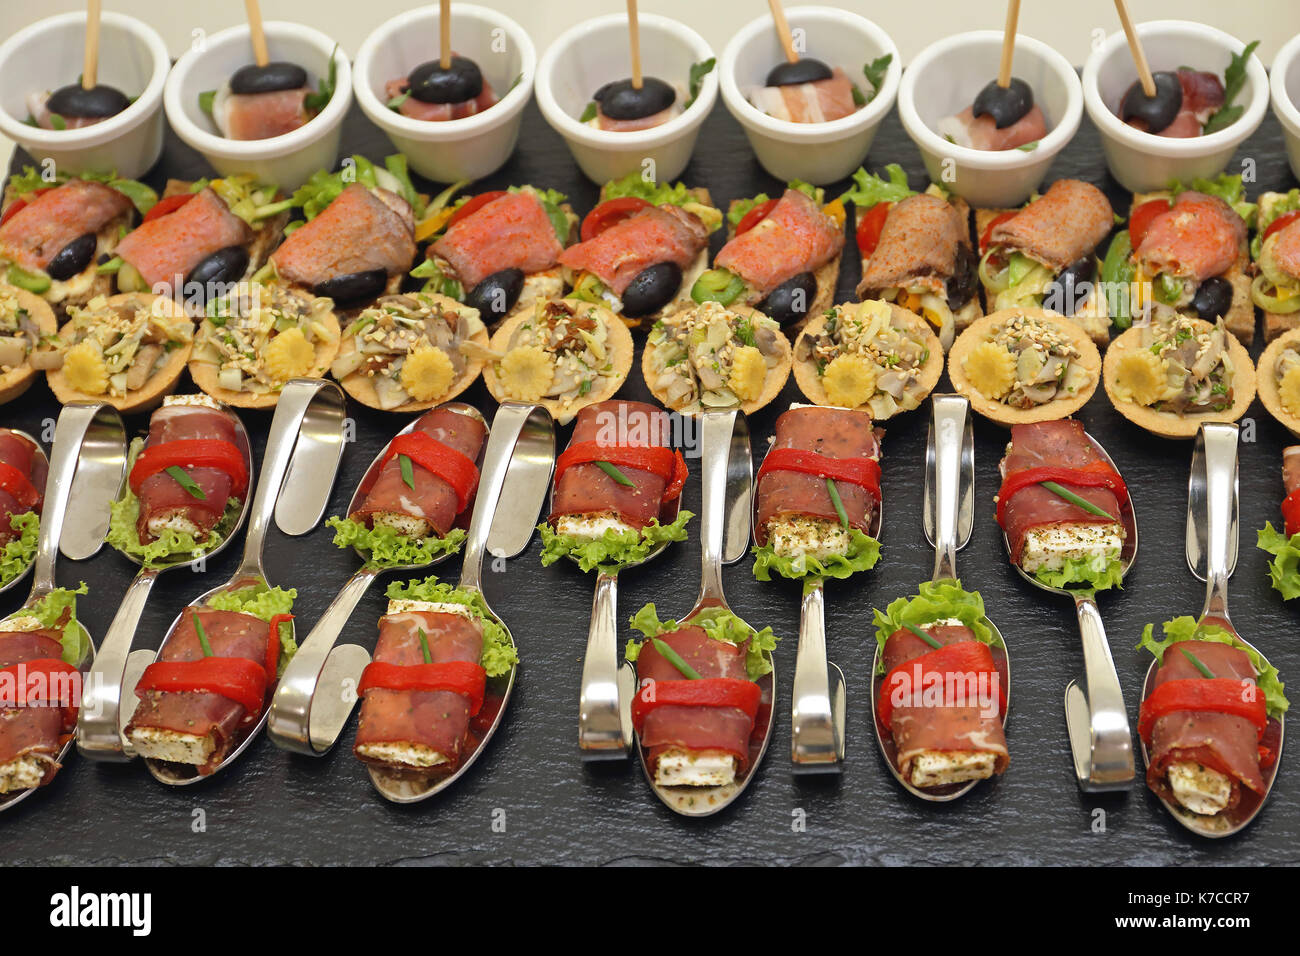 Modern Canapes Food Served in Bended Spoons - Stock Image